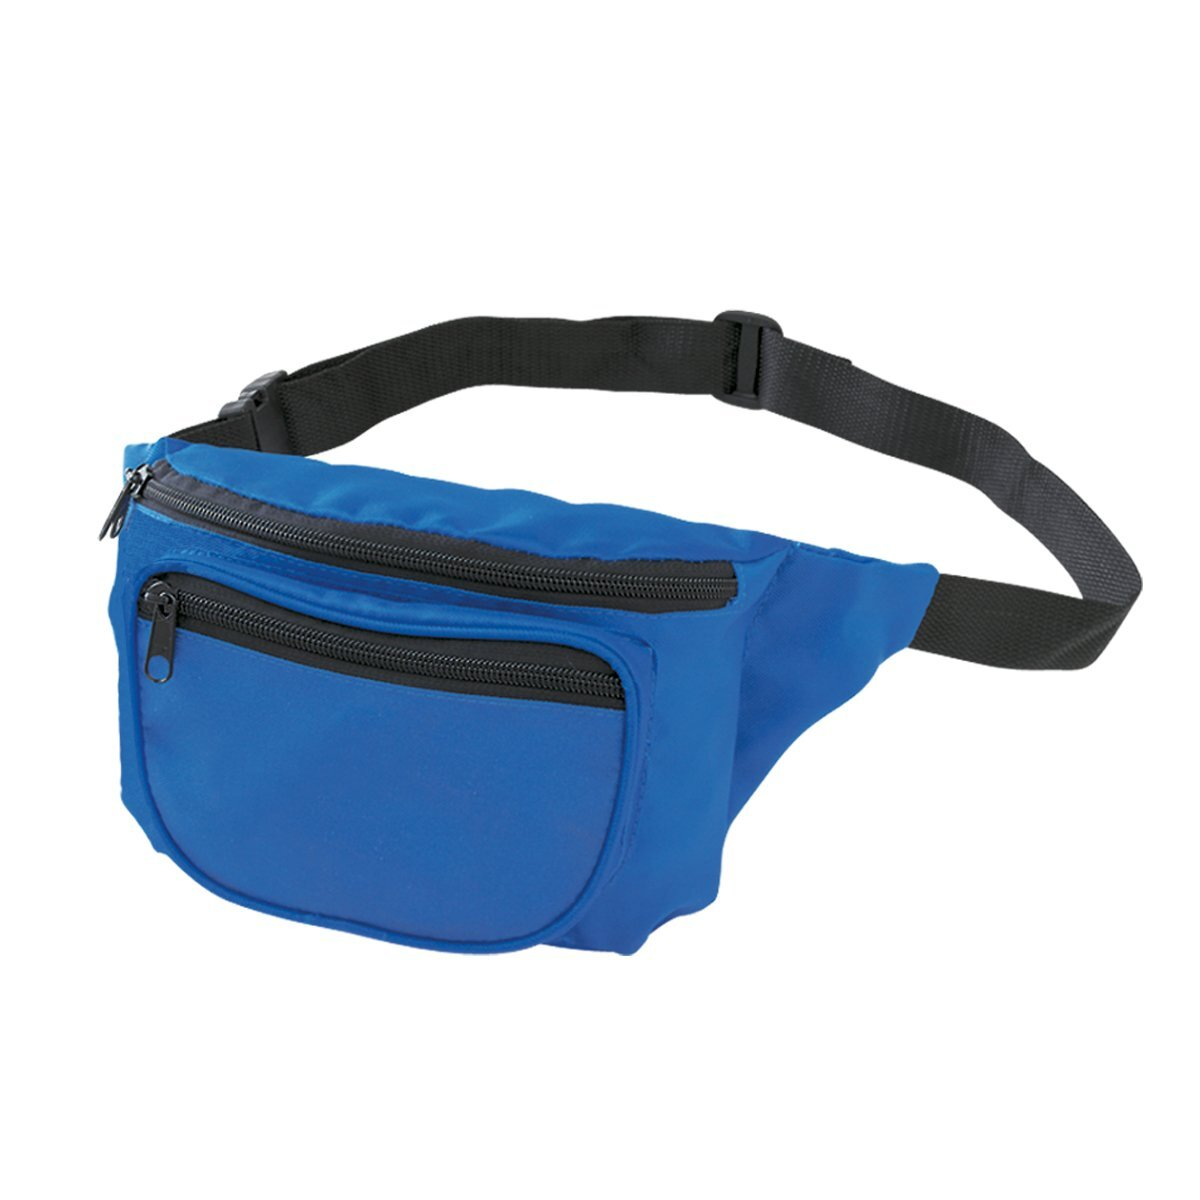 Deluxe Waist Pack with Zippered Compartments